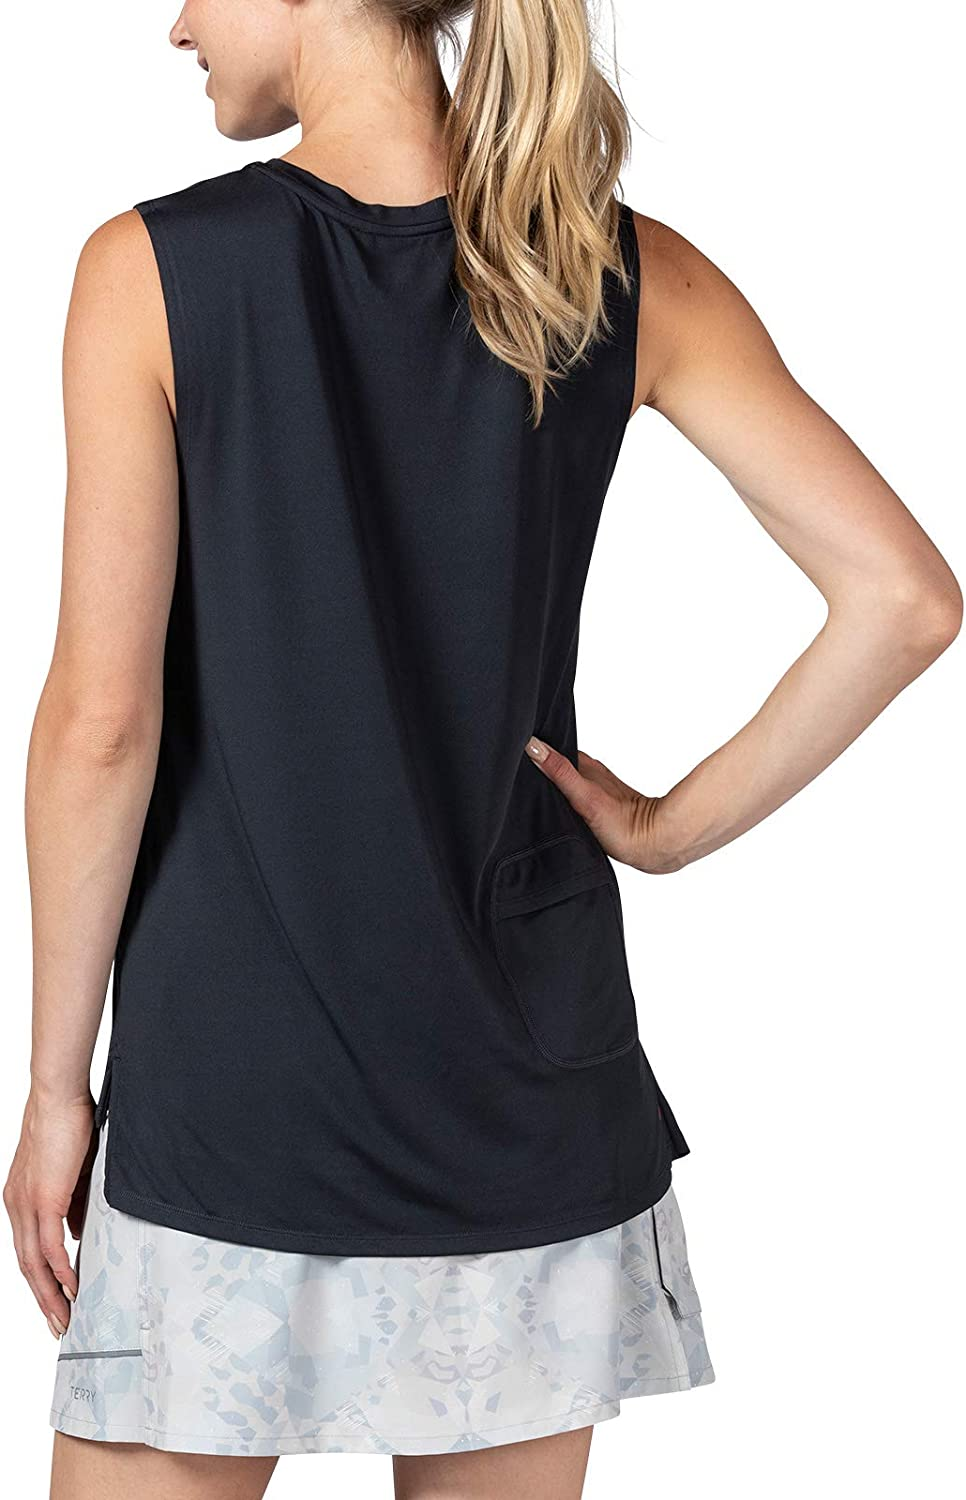 Terry Tech Tank Cycling Jersey Quick Dry Breathable Athletic Workout Shirt Women/'s Sleeveless